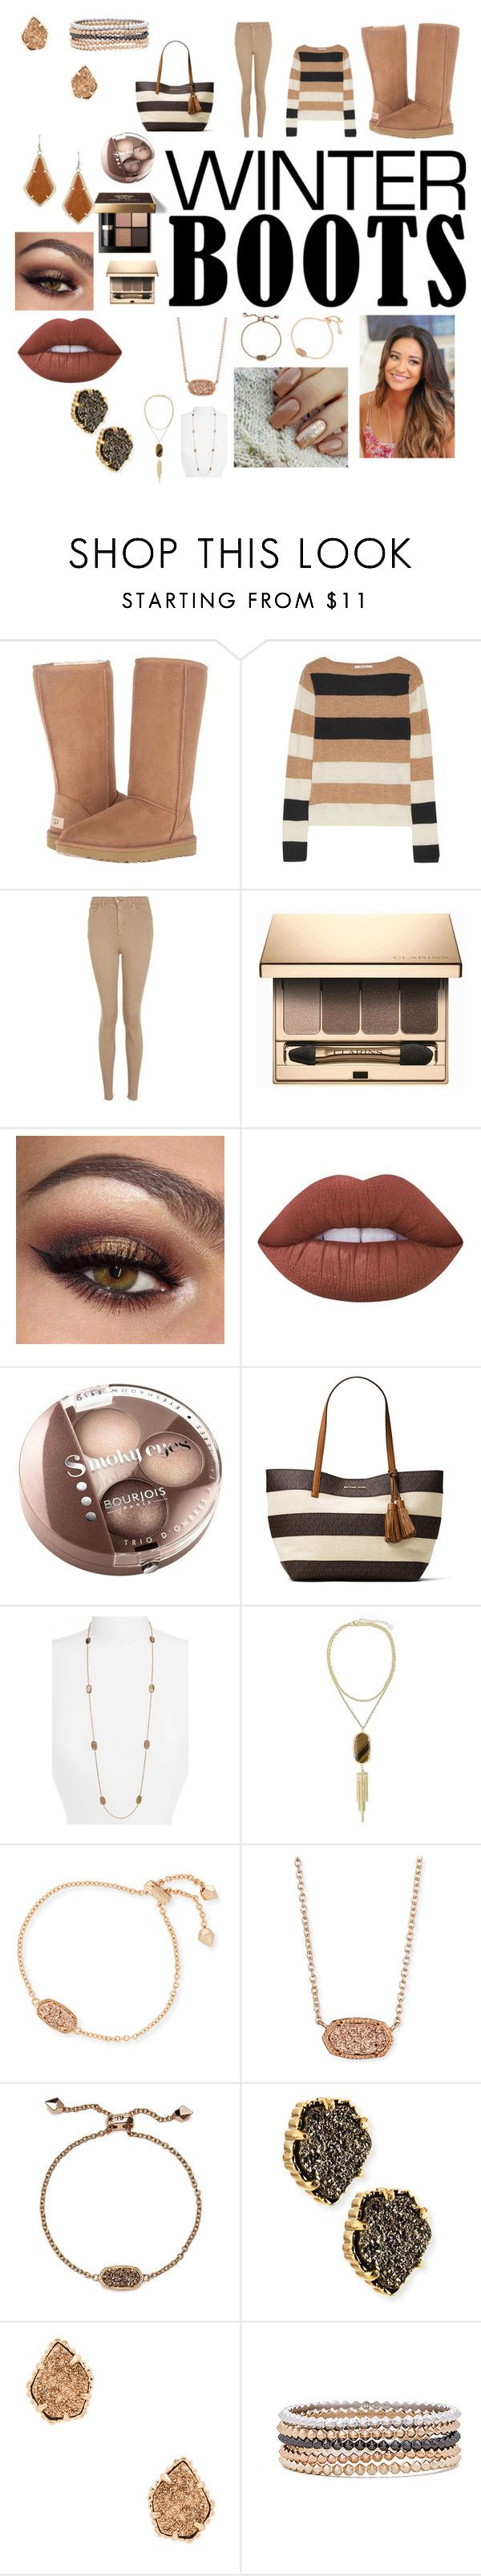 """""""Brown Shades of Warmth"""" by cutekj103 ❤ liked on Polyvore featuring UGG Australia, MaxMara, Topshop, Clarins, Bobbi Brown Cosmetics, Lime Crime, Bourjois, MICHAEL Michael Kors and Kendra Scott"""